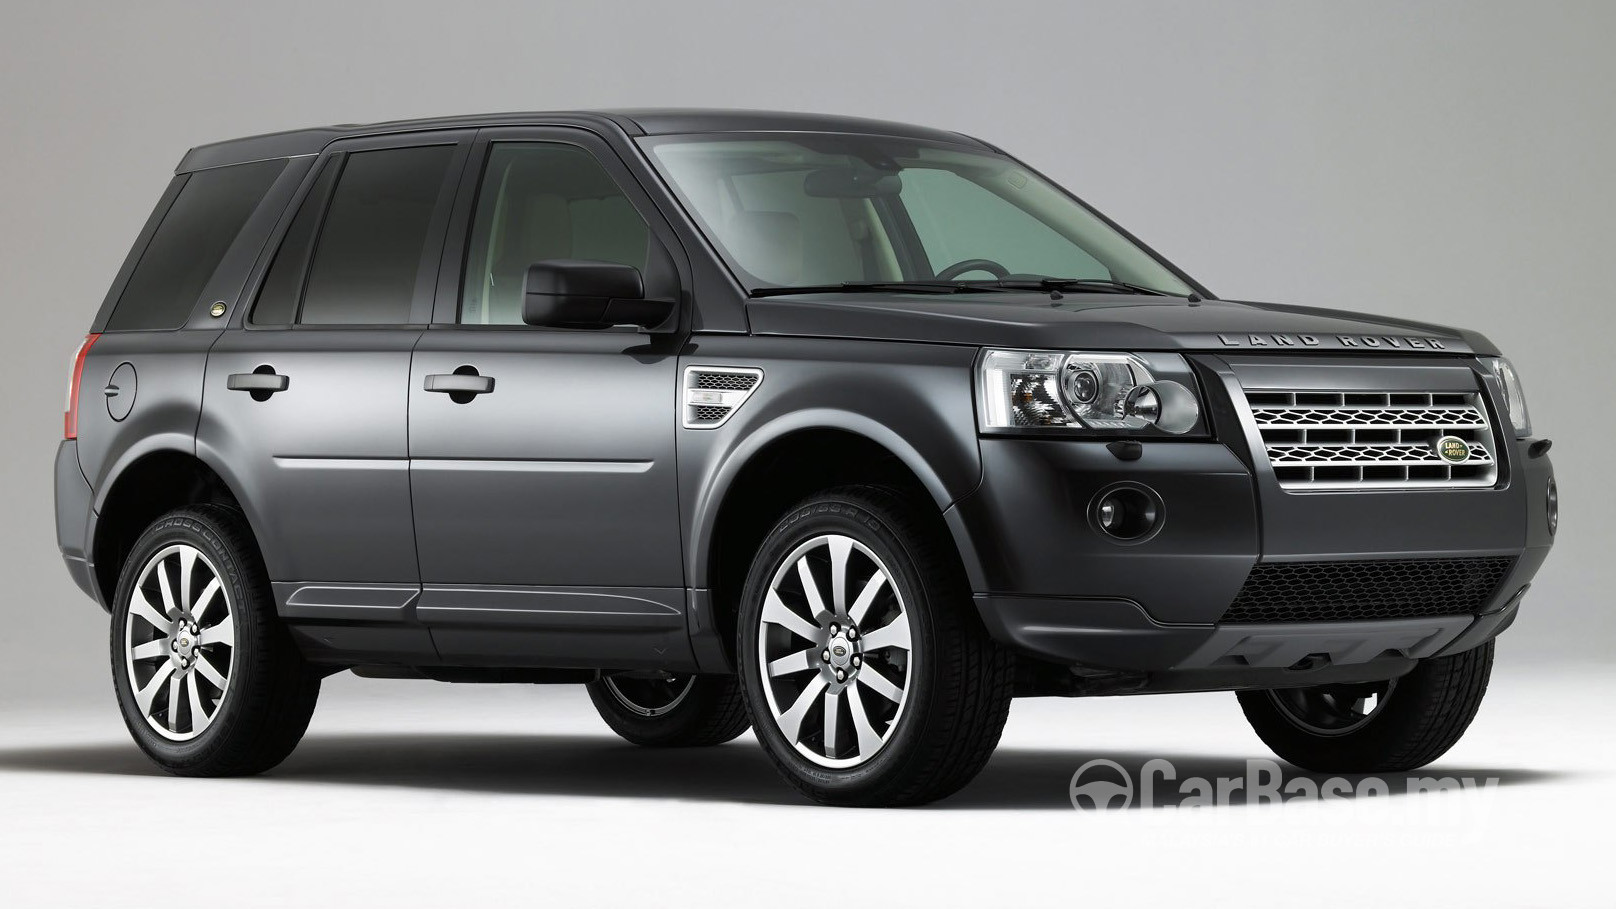 Land Rover Faq Frequently Asked Questions Home Autos Post